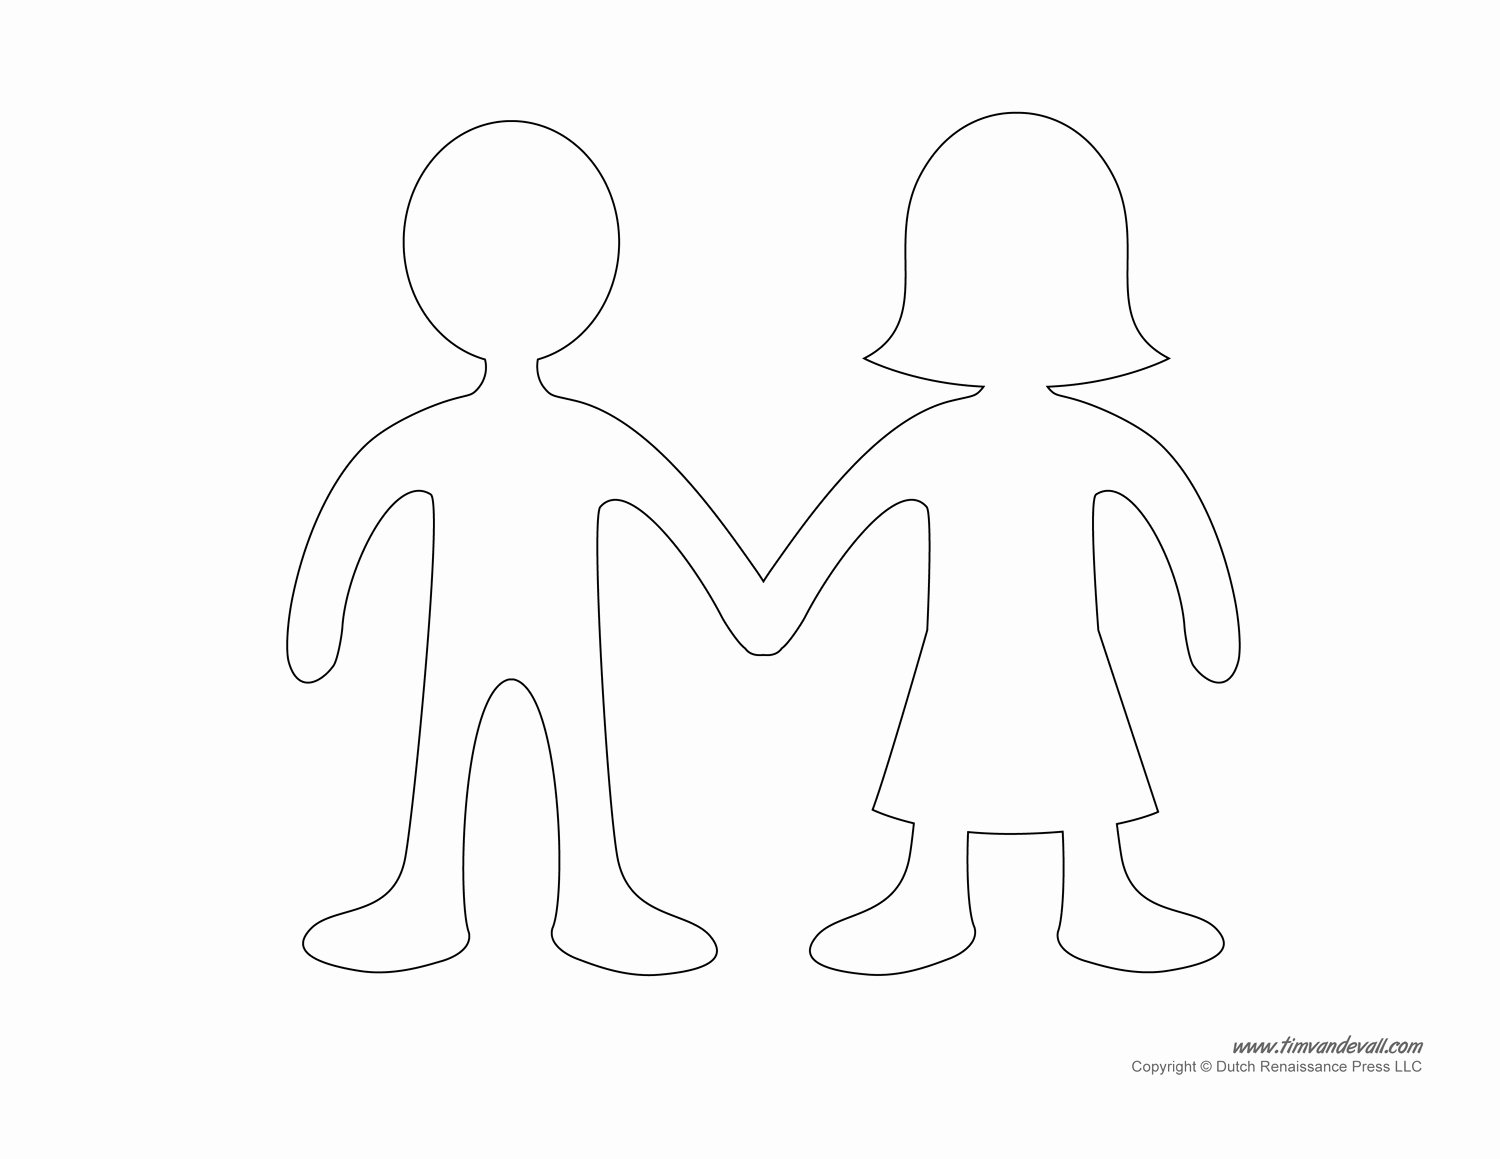 Printable Paper Doll Templates Awesome Tim Van De Vall Ics & Printables for Kids